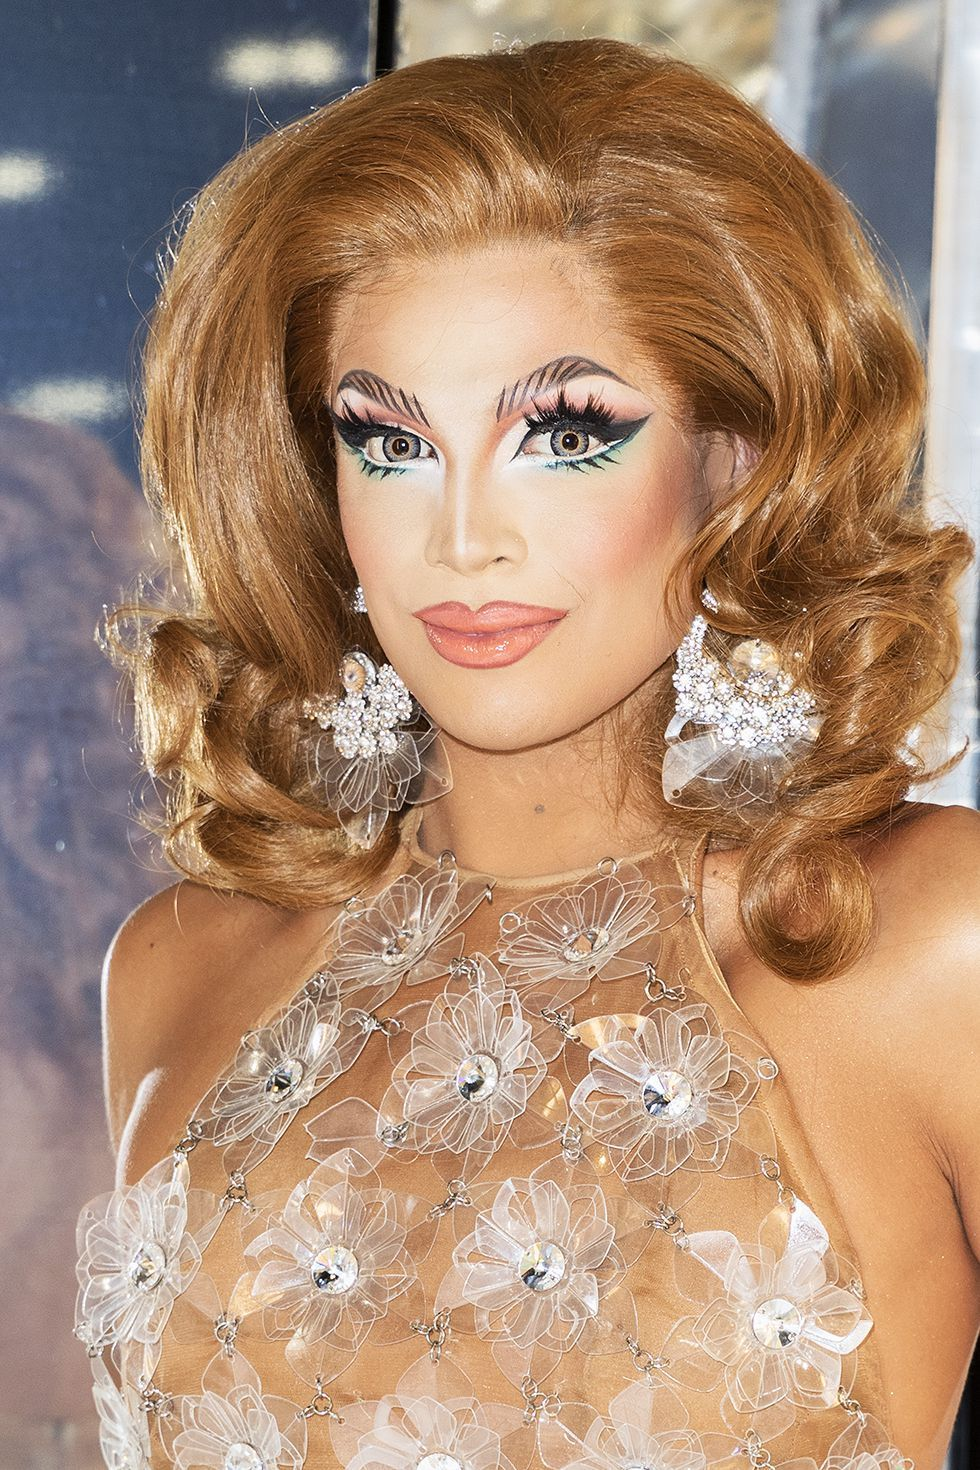 The 21 Best Makeup Tips from Drag Queens (con imágenes